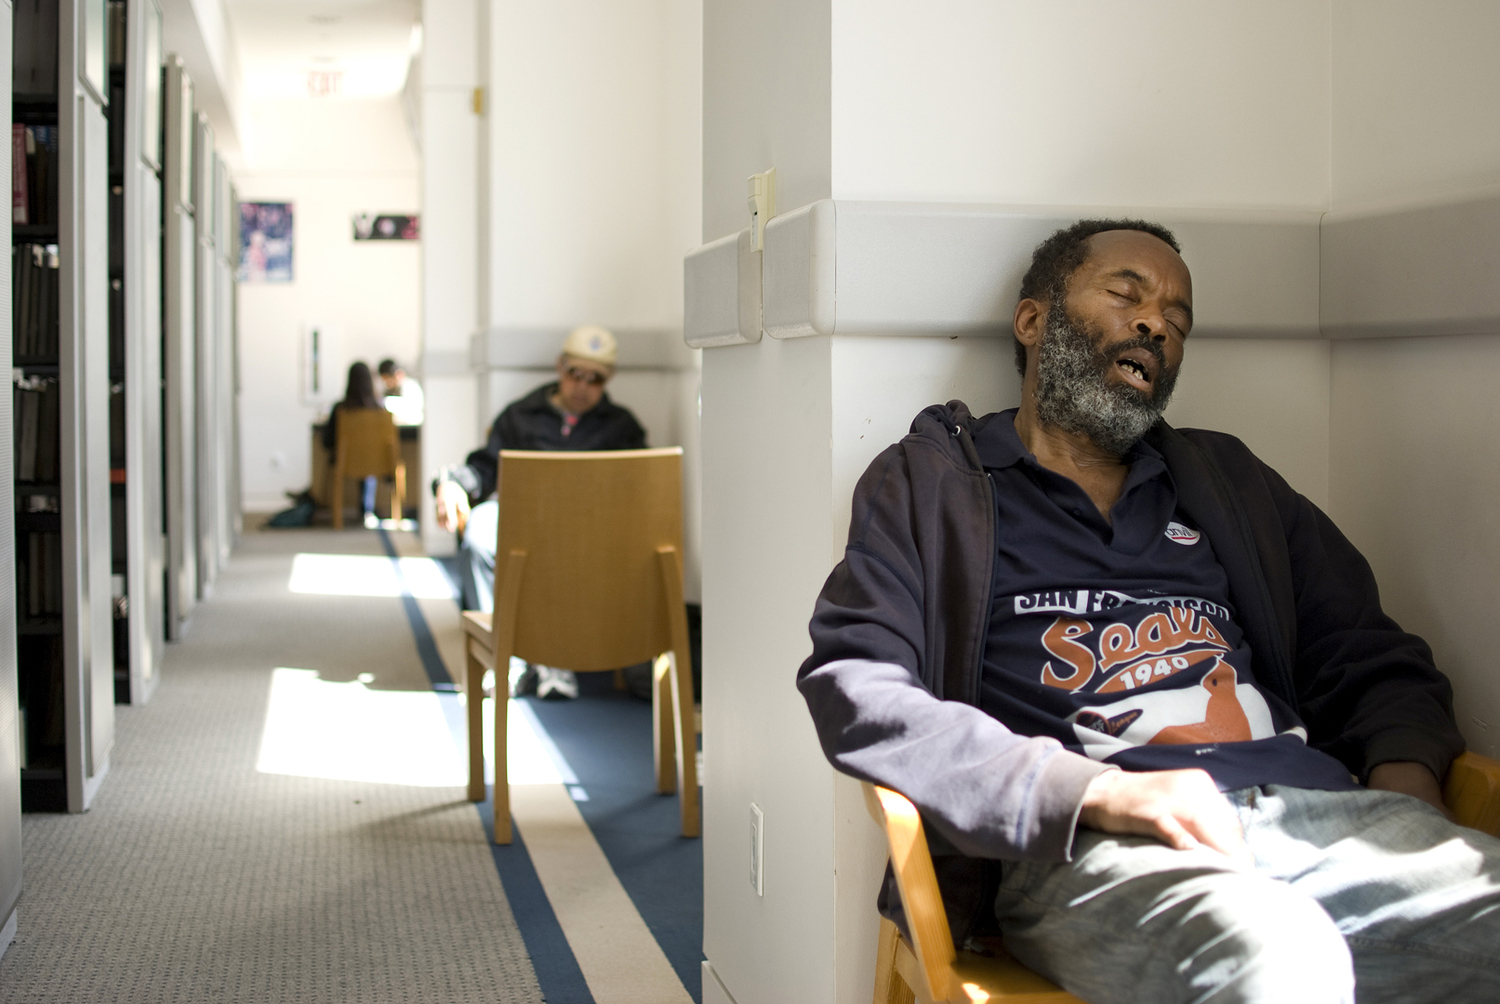 A man takes a midday nap at the San Francisco Public Library's Main Branch.